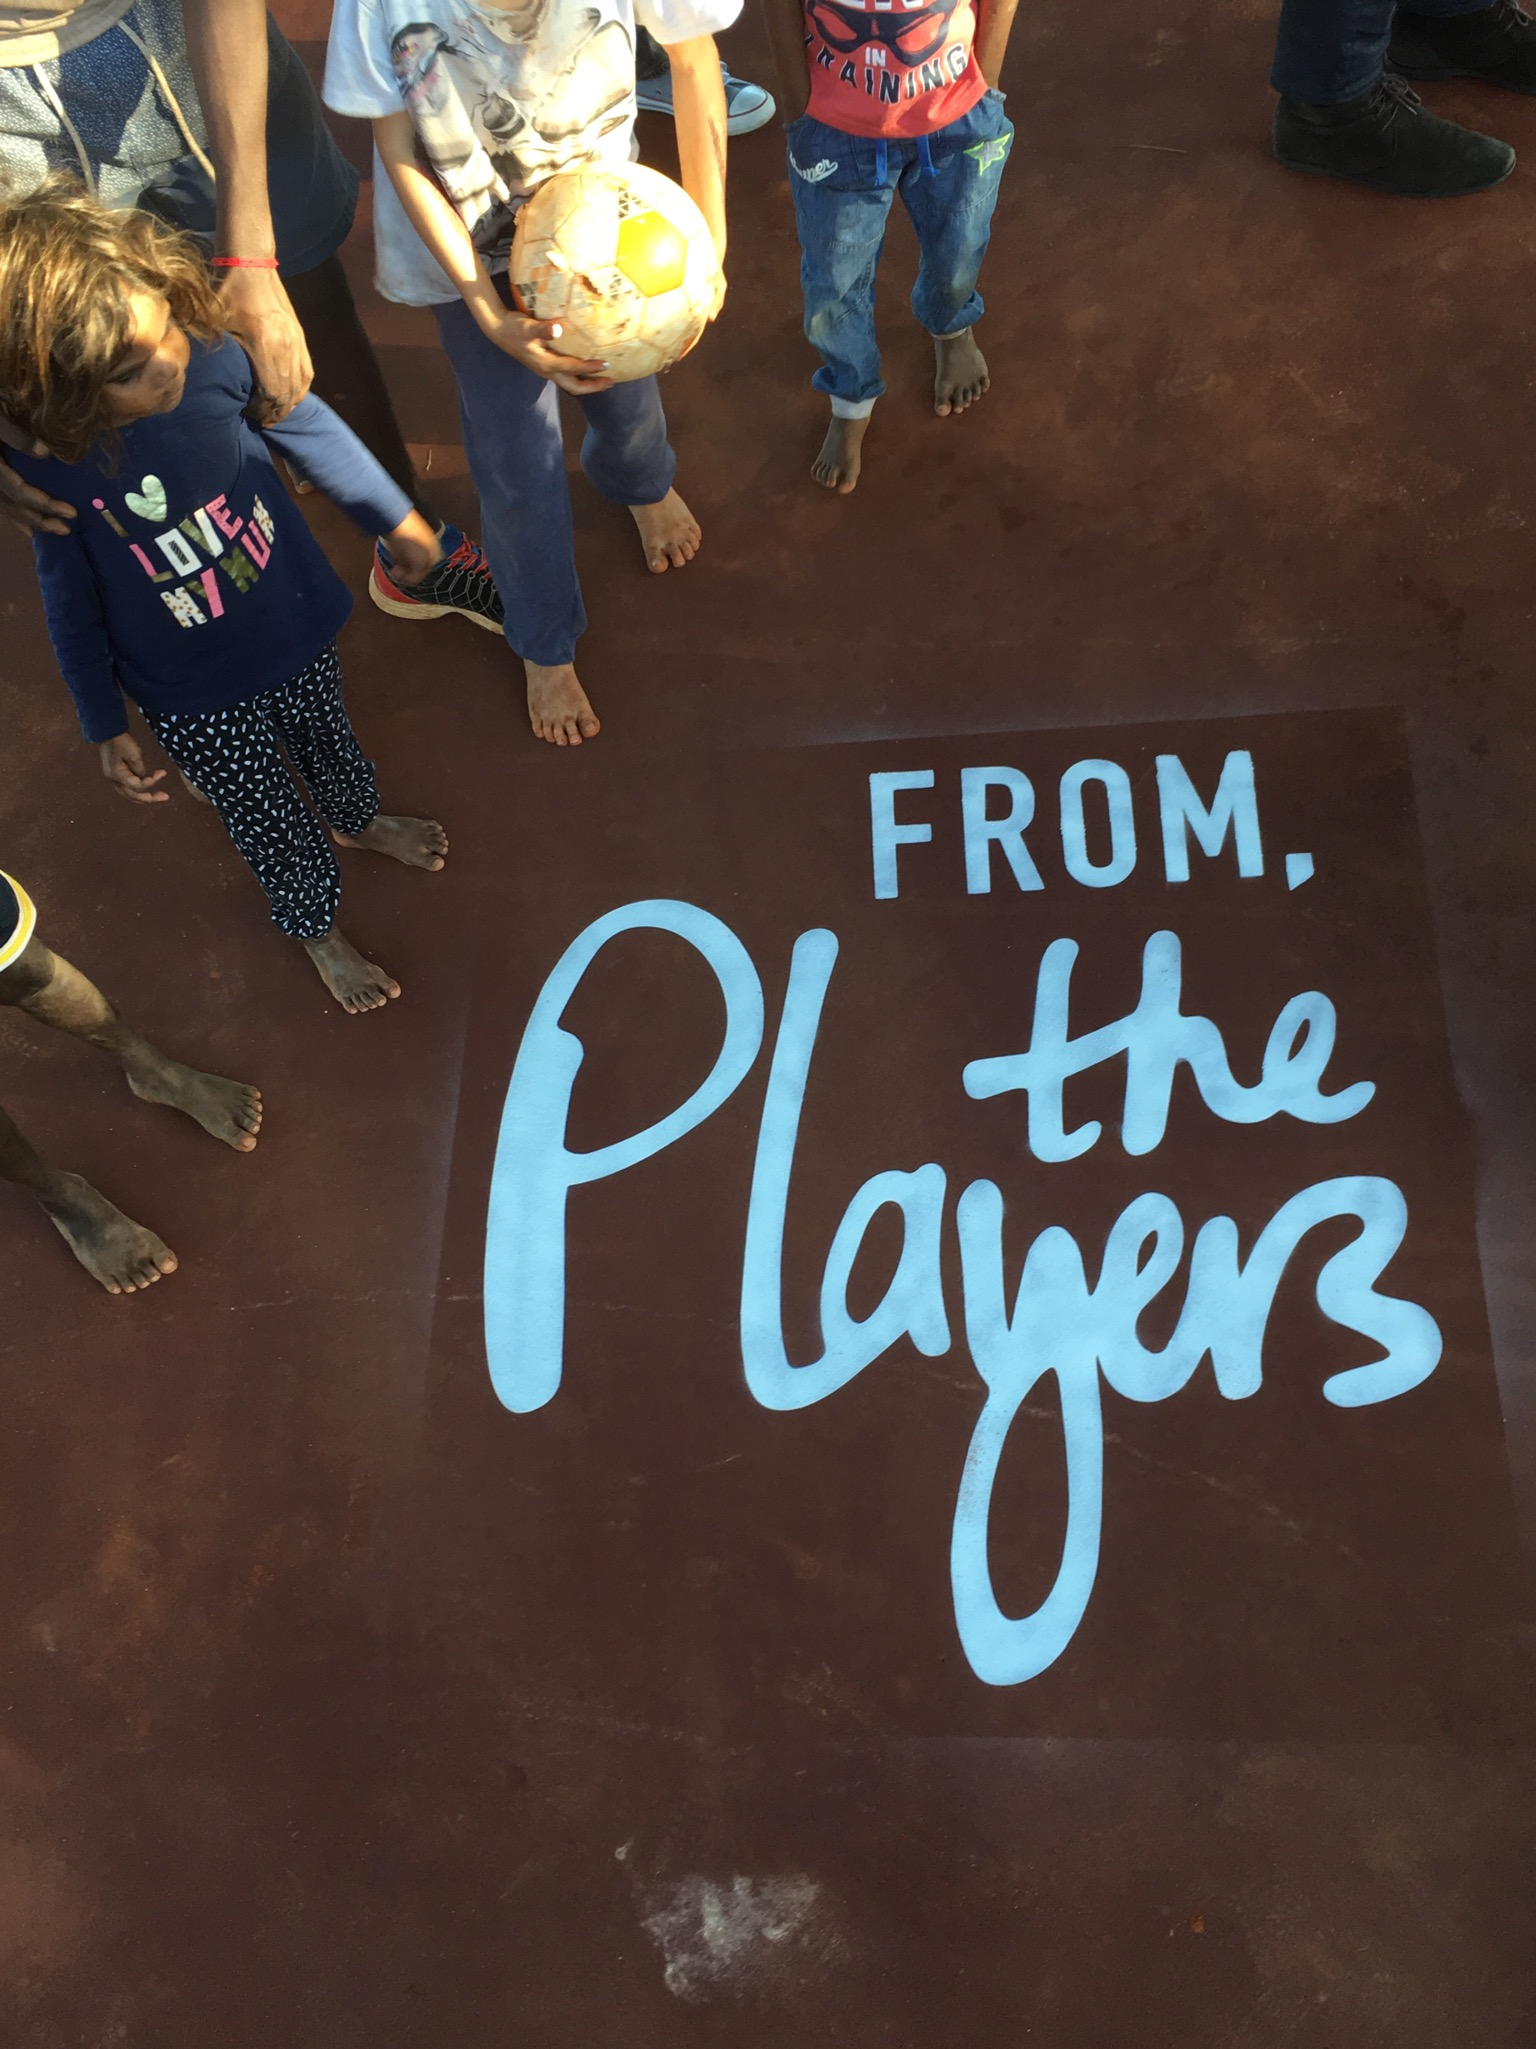 Off the Court Assists: What the Players are Doing in the Community